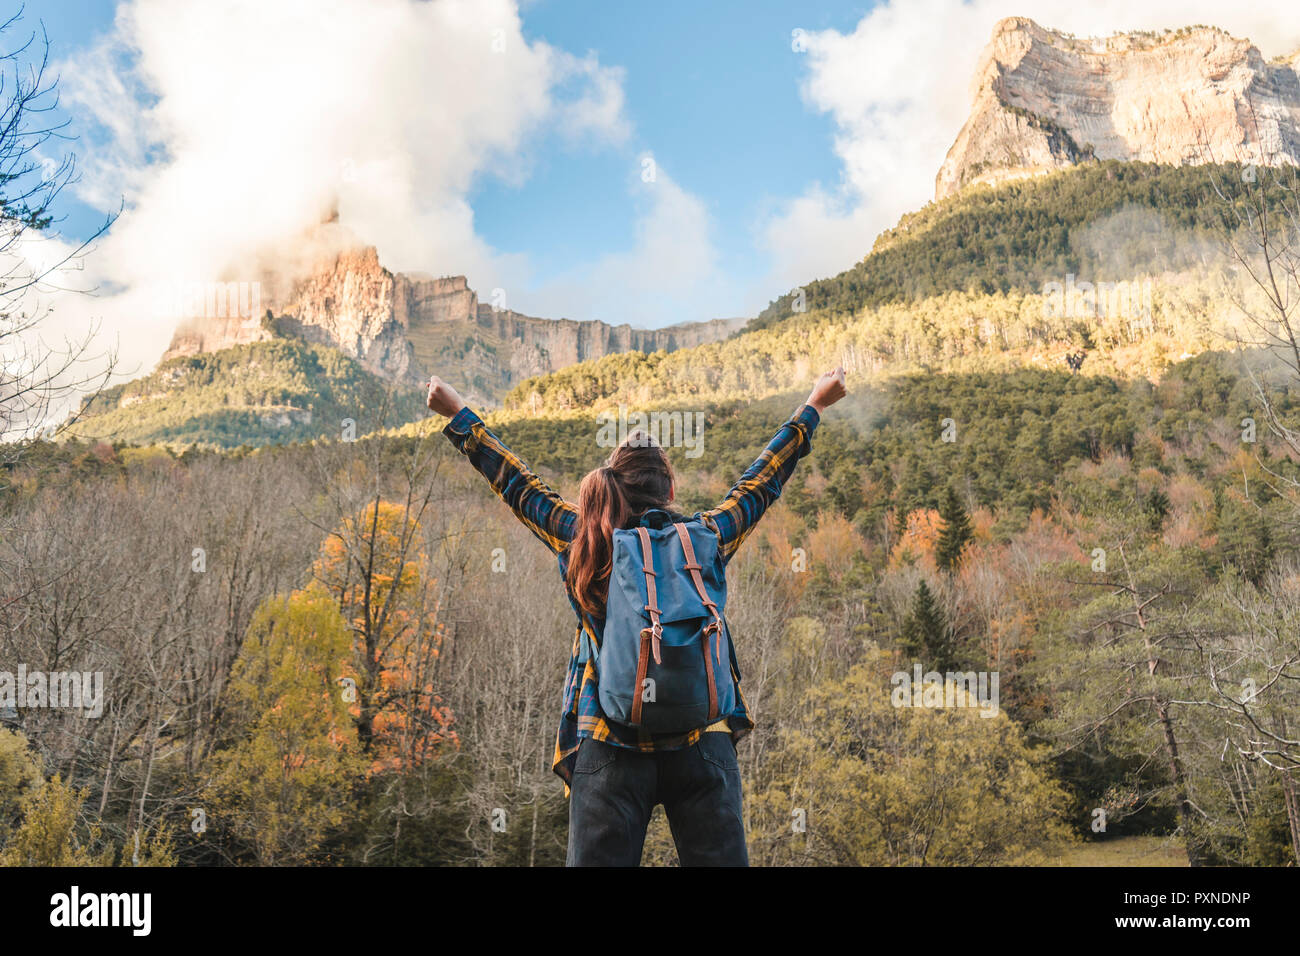 Spain, Ordesa y Monte Perdido National Park, back view of happy woman with backpack looking at view - Stock Image